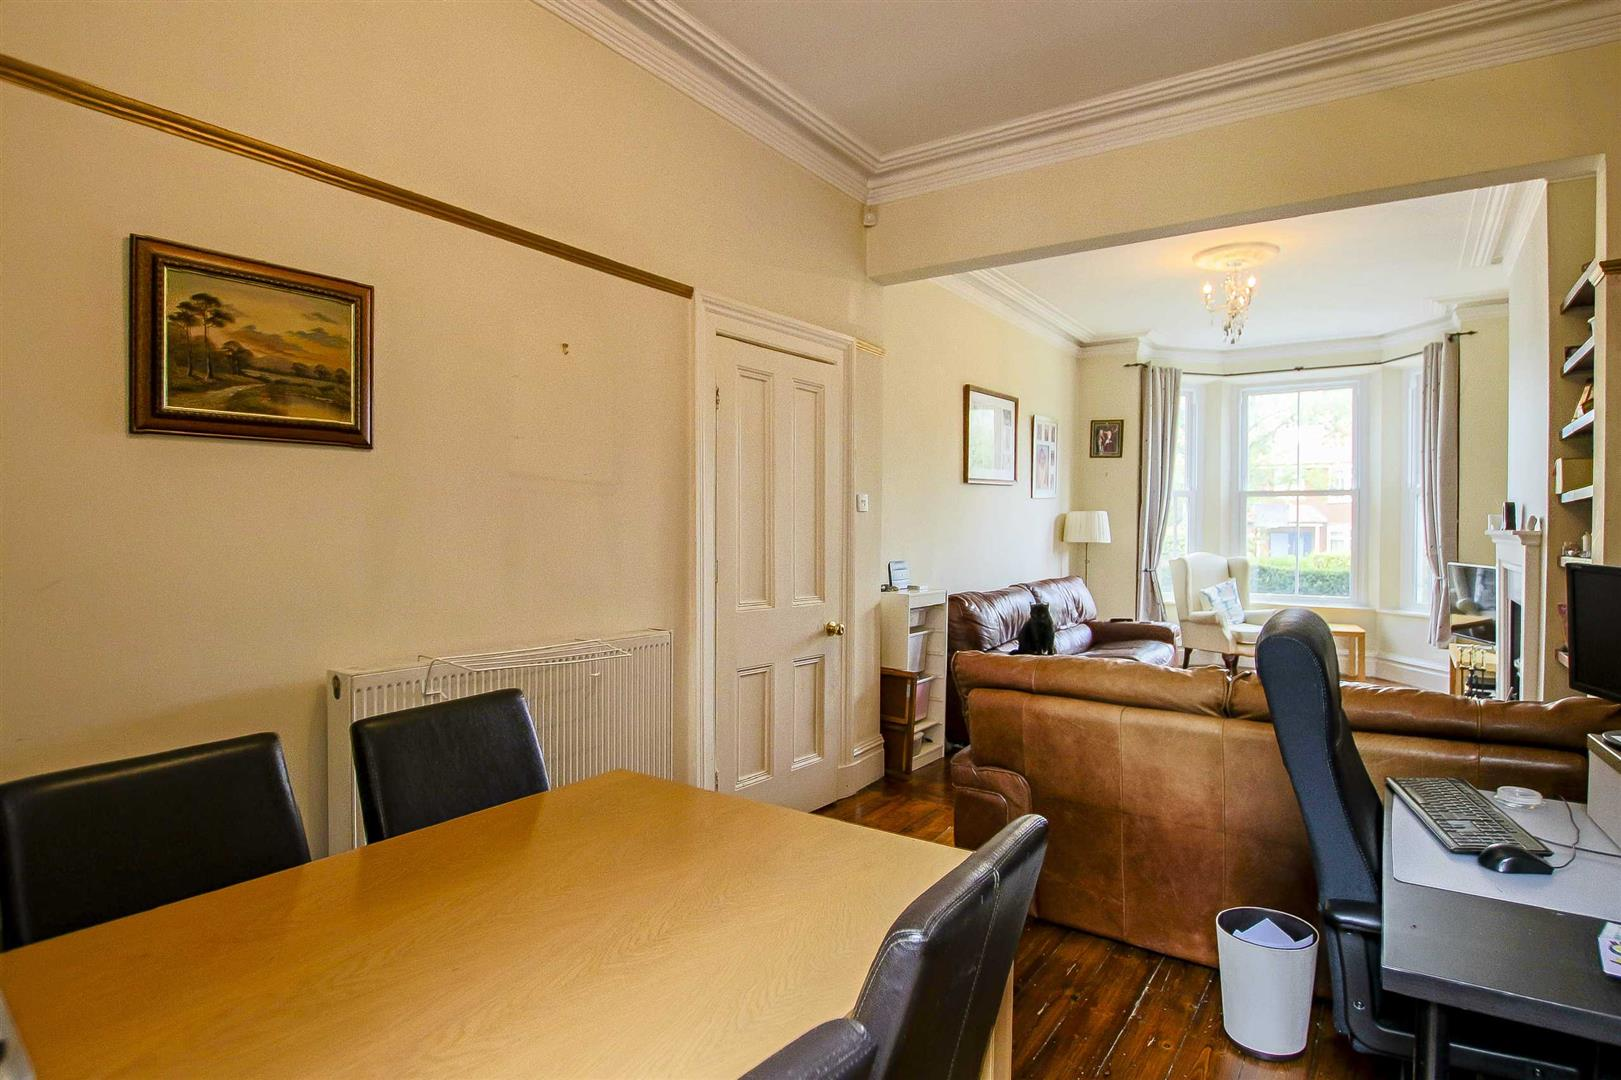 5 Bedroom Terraced House For Sale - Image 17